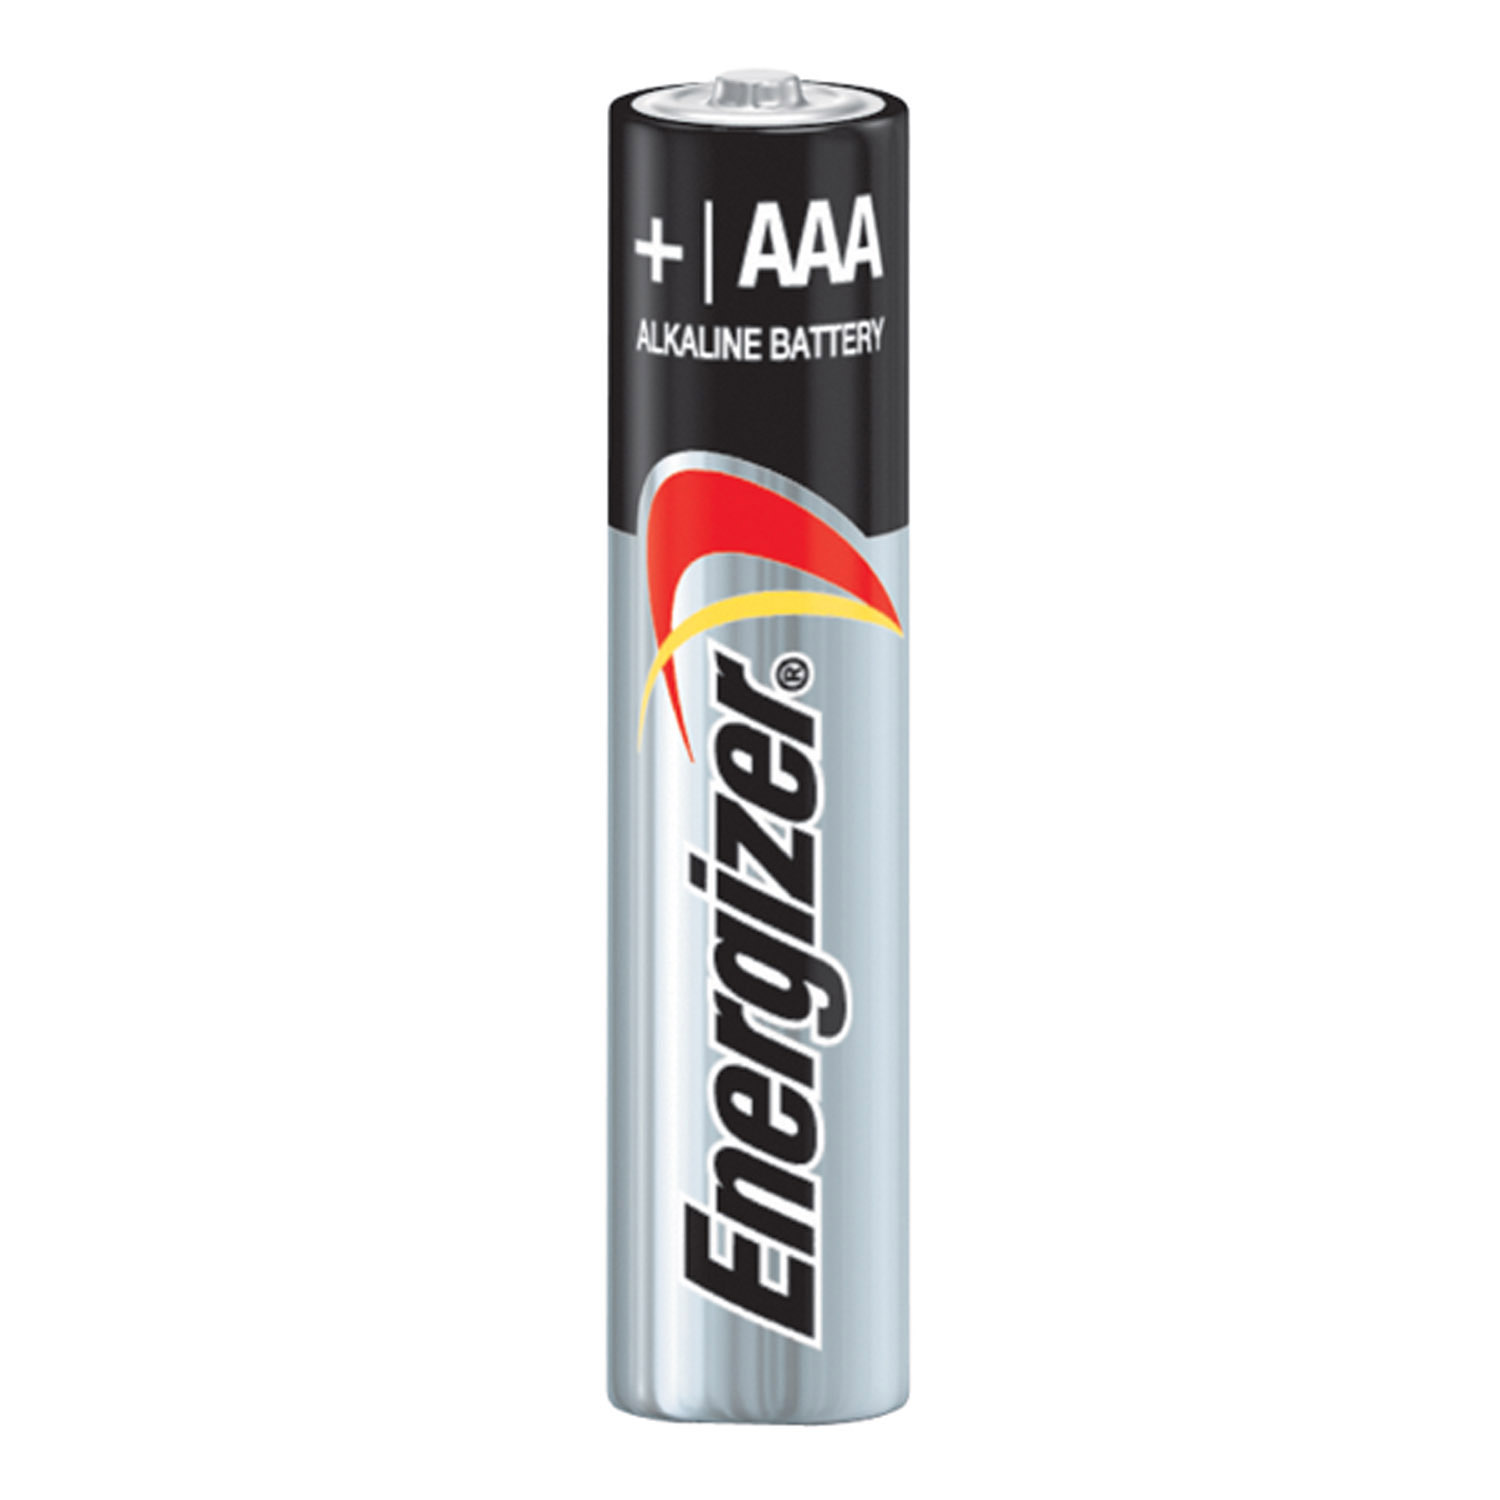 Energizer AAA Battery 2 PACK (ALZ02G)